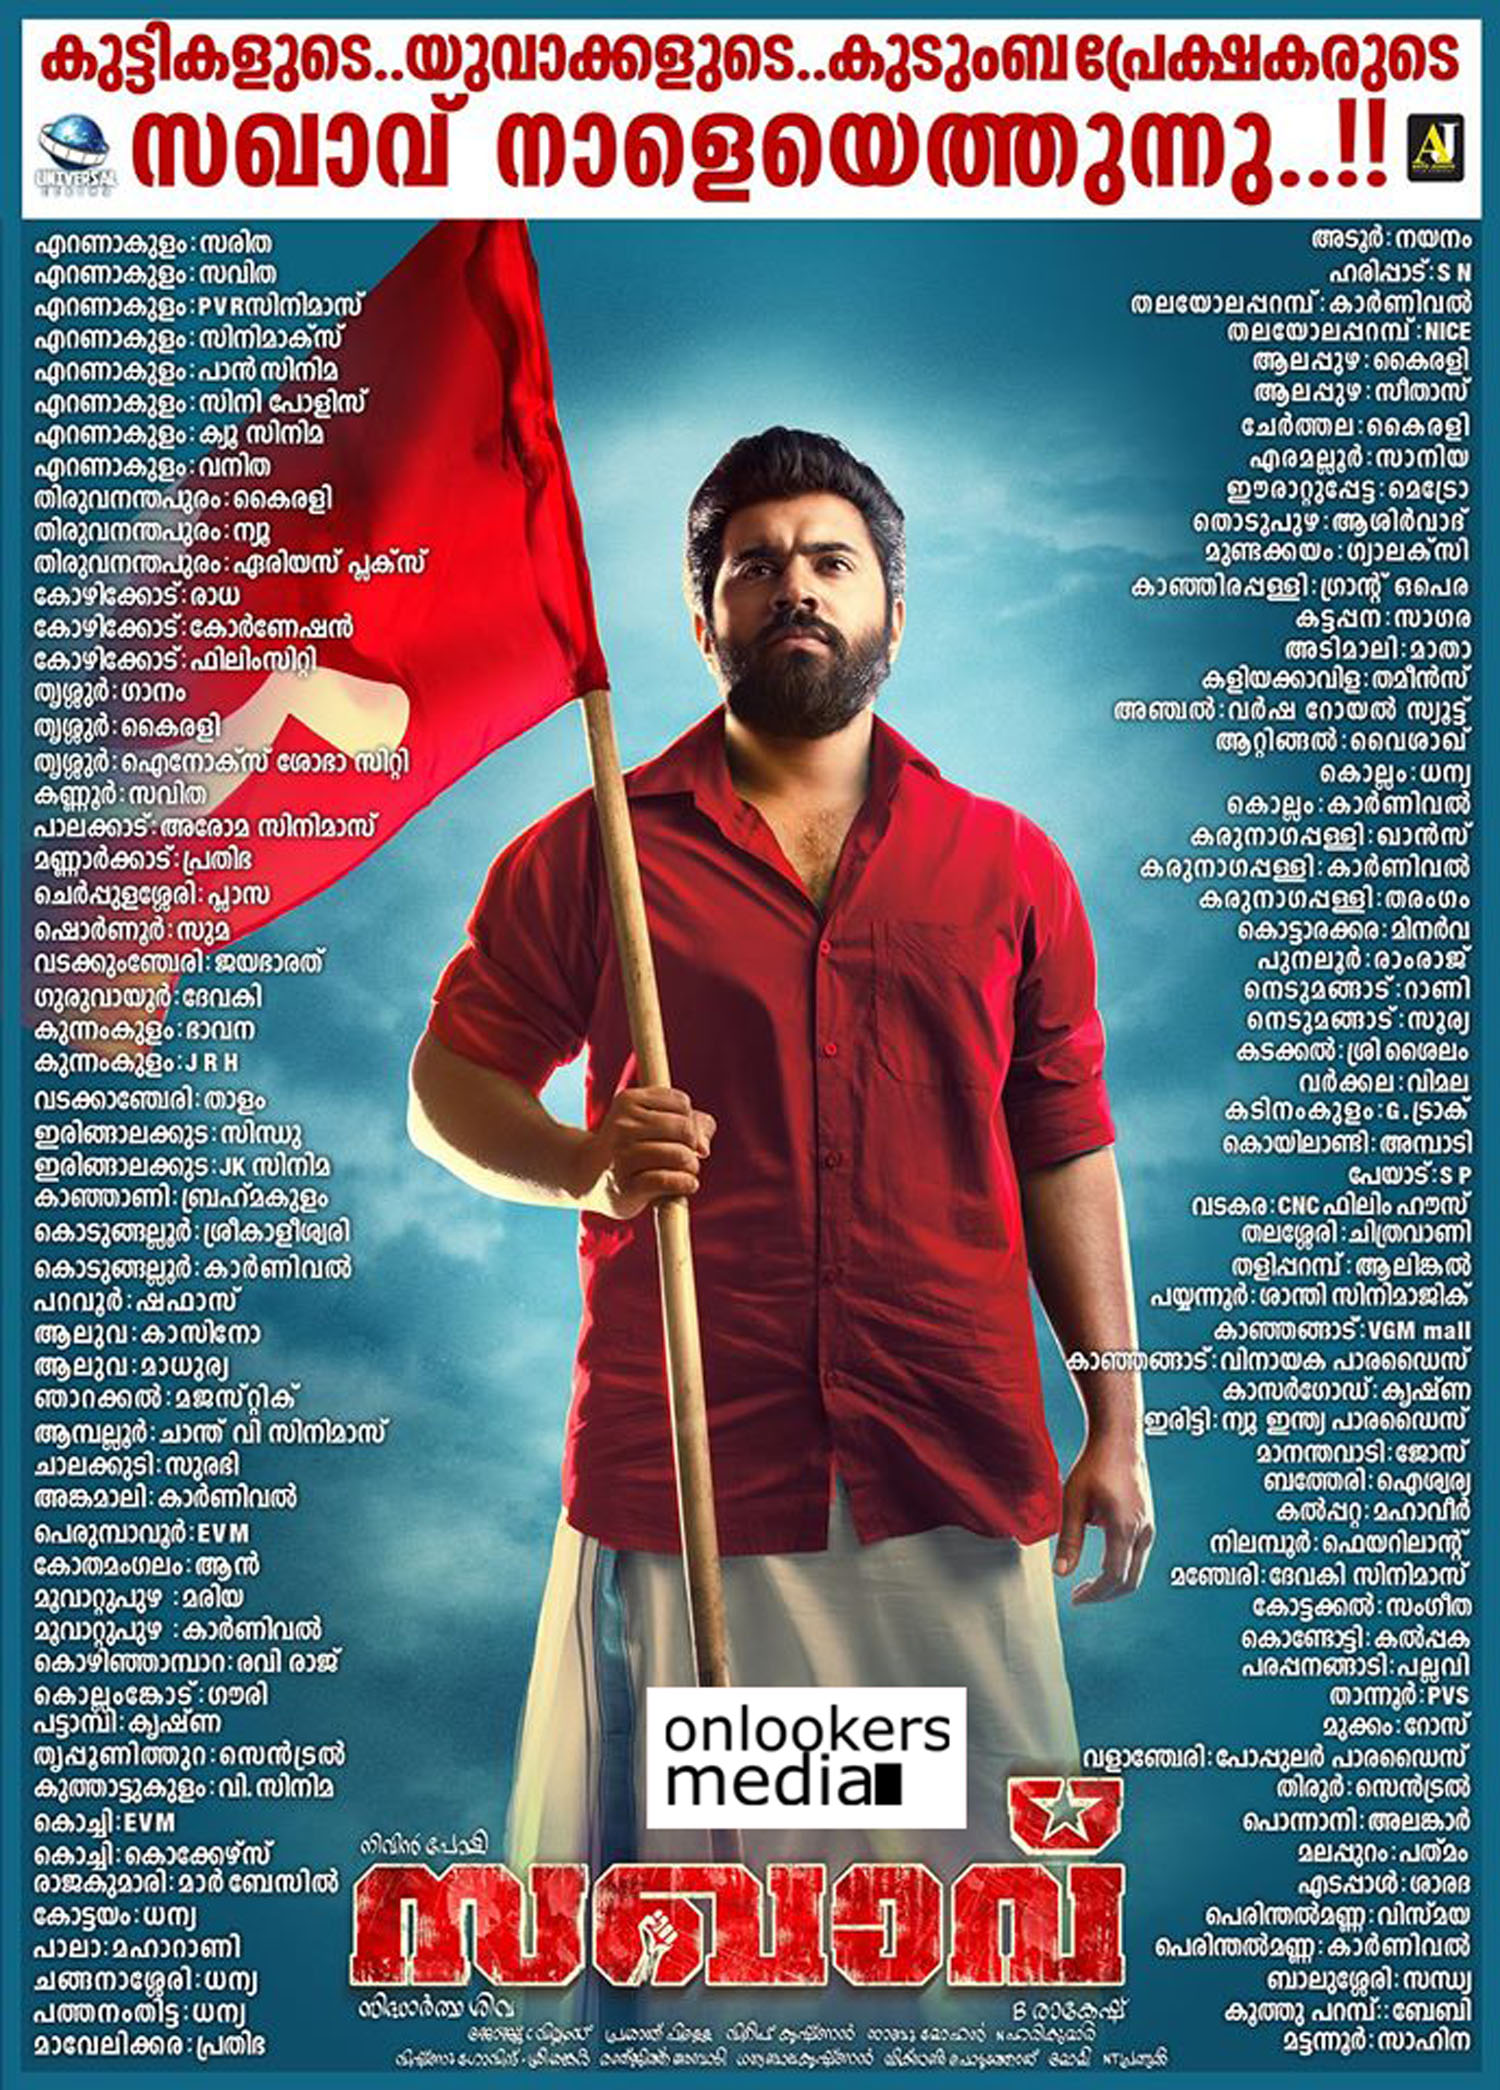 Sakhavu, Sakhavu theatre list, Sakhavu malayalam movie, nivin pauly, malayalam movie 2017,